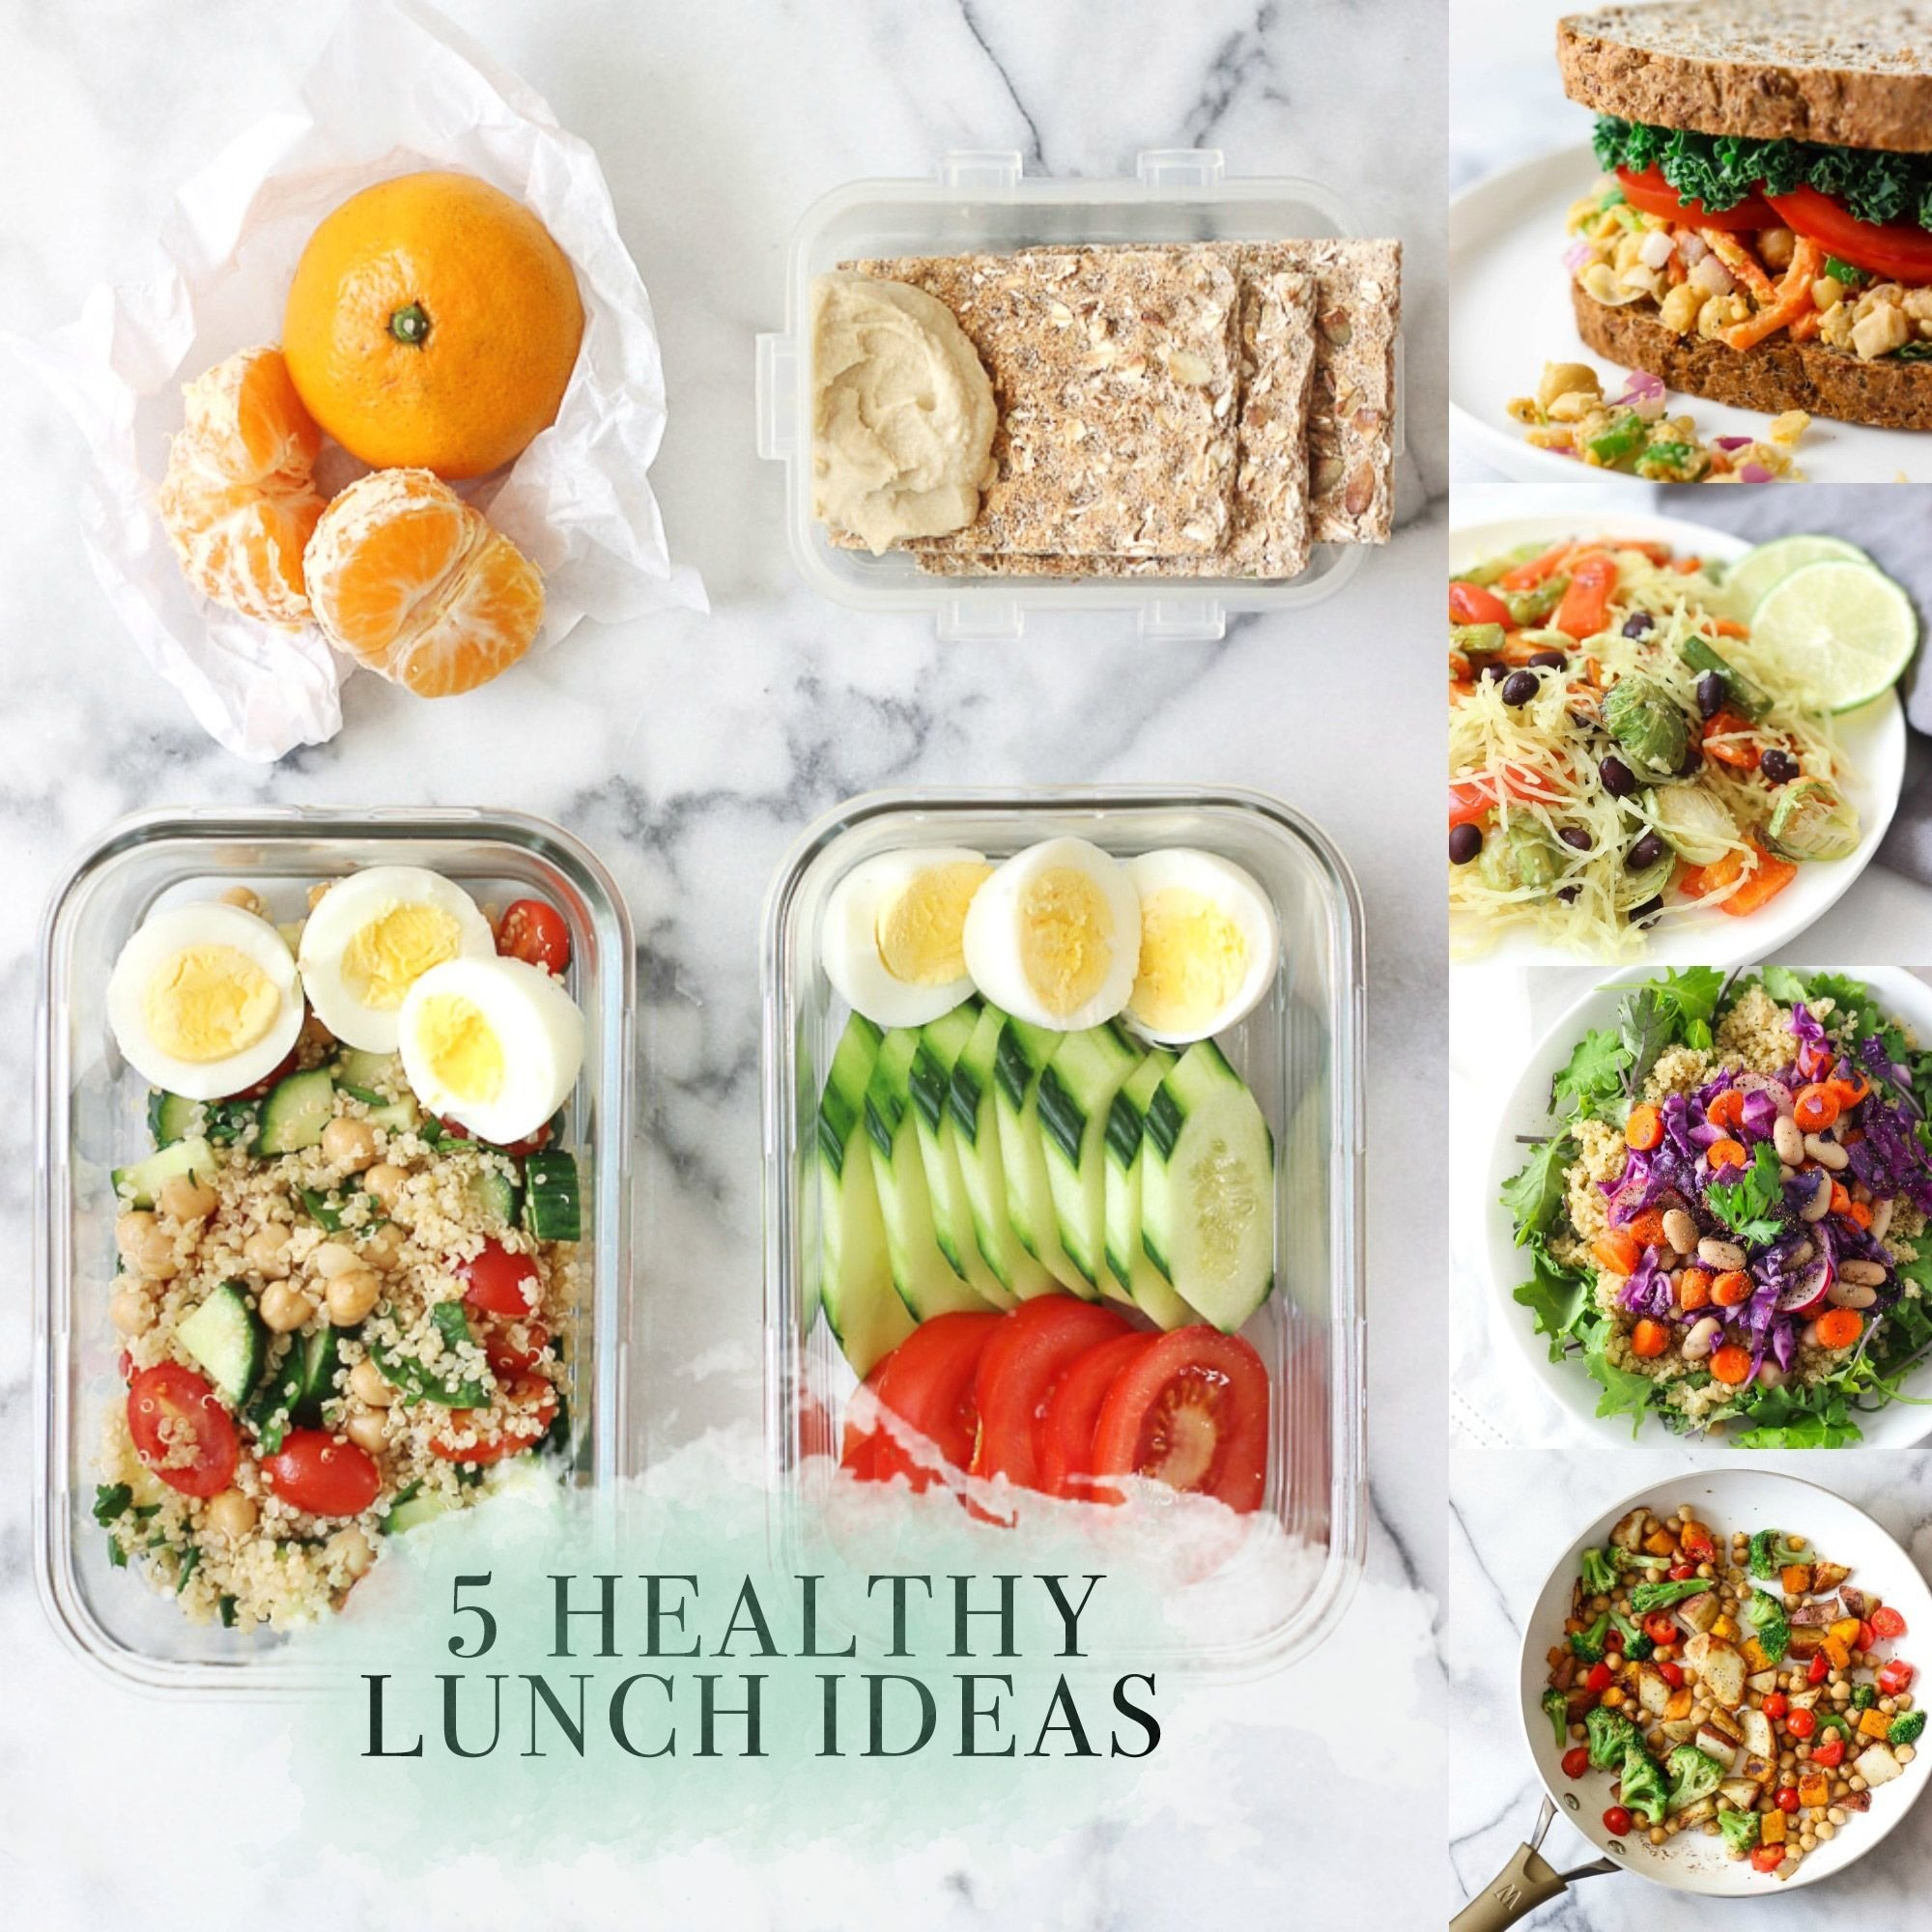 10 Cute Good Lunch Ideas For Work 5 healthy lunch recipes 2020